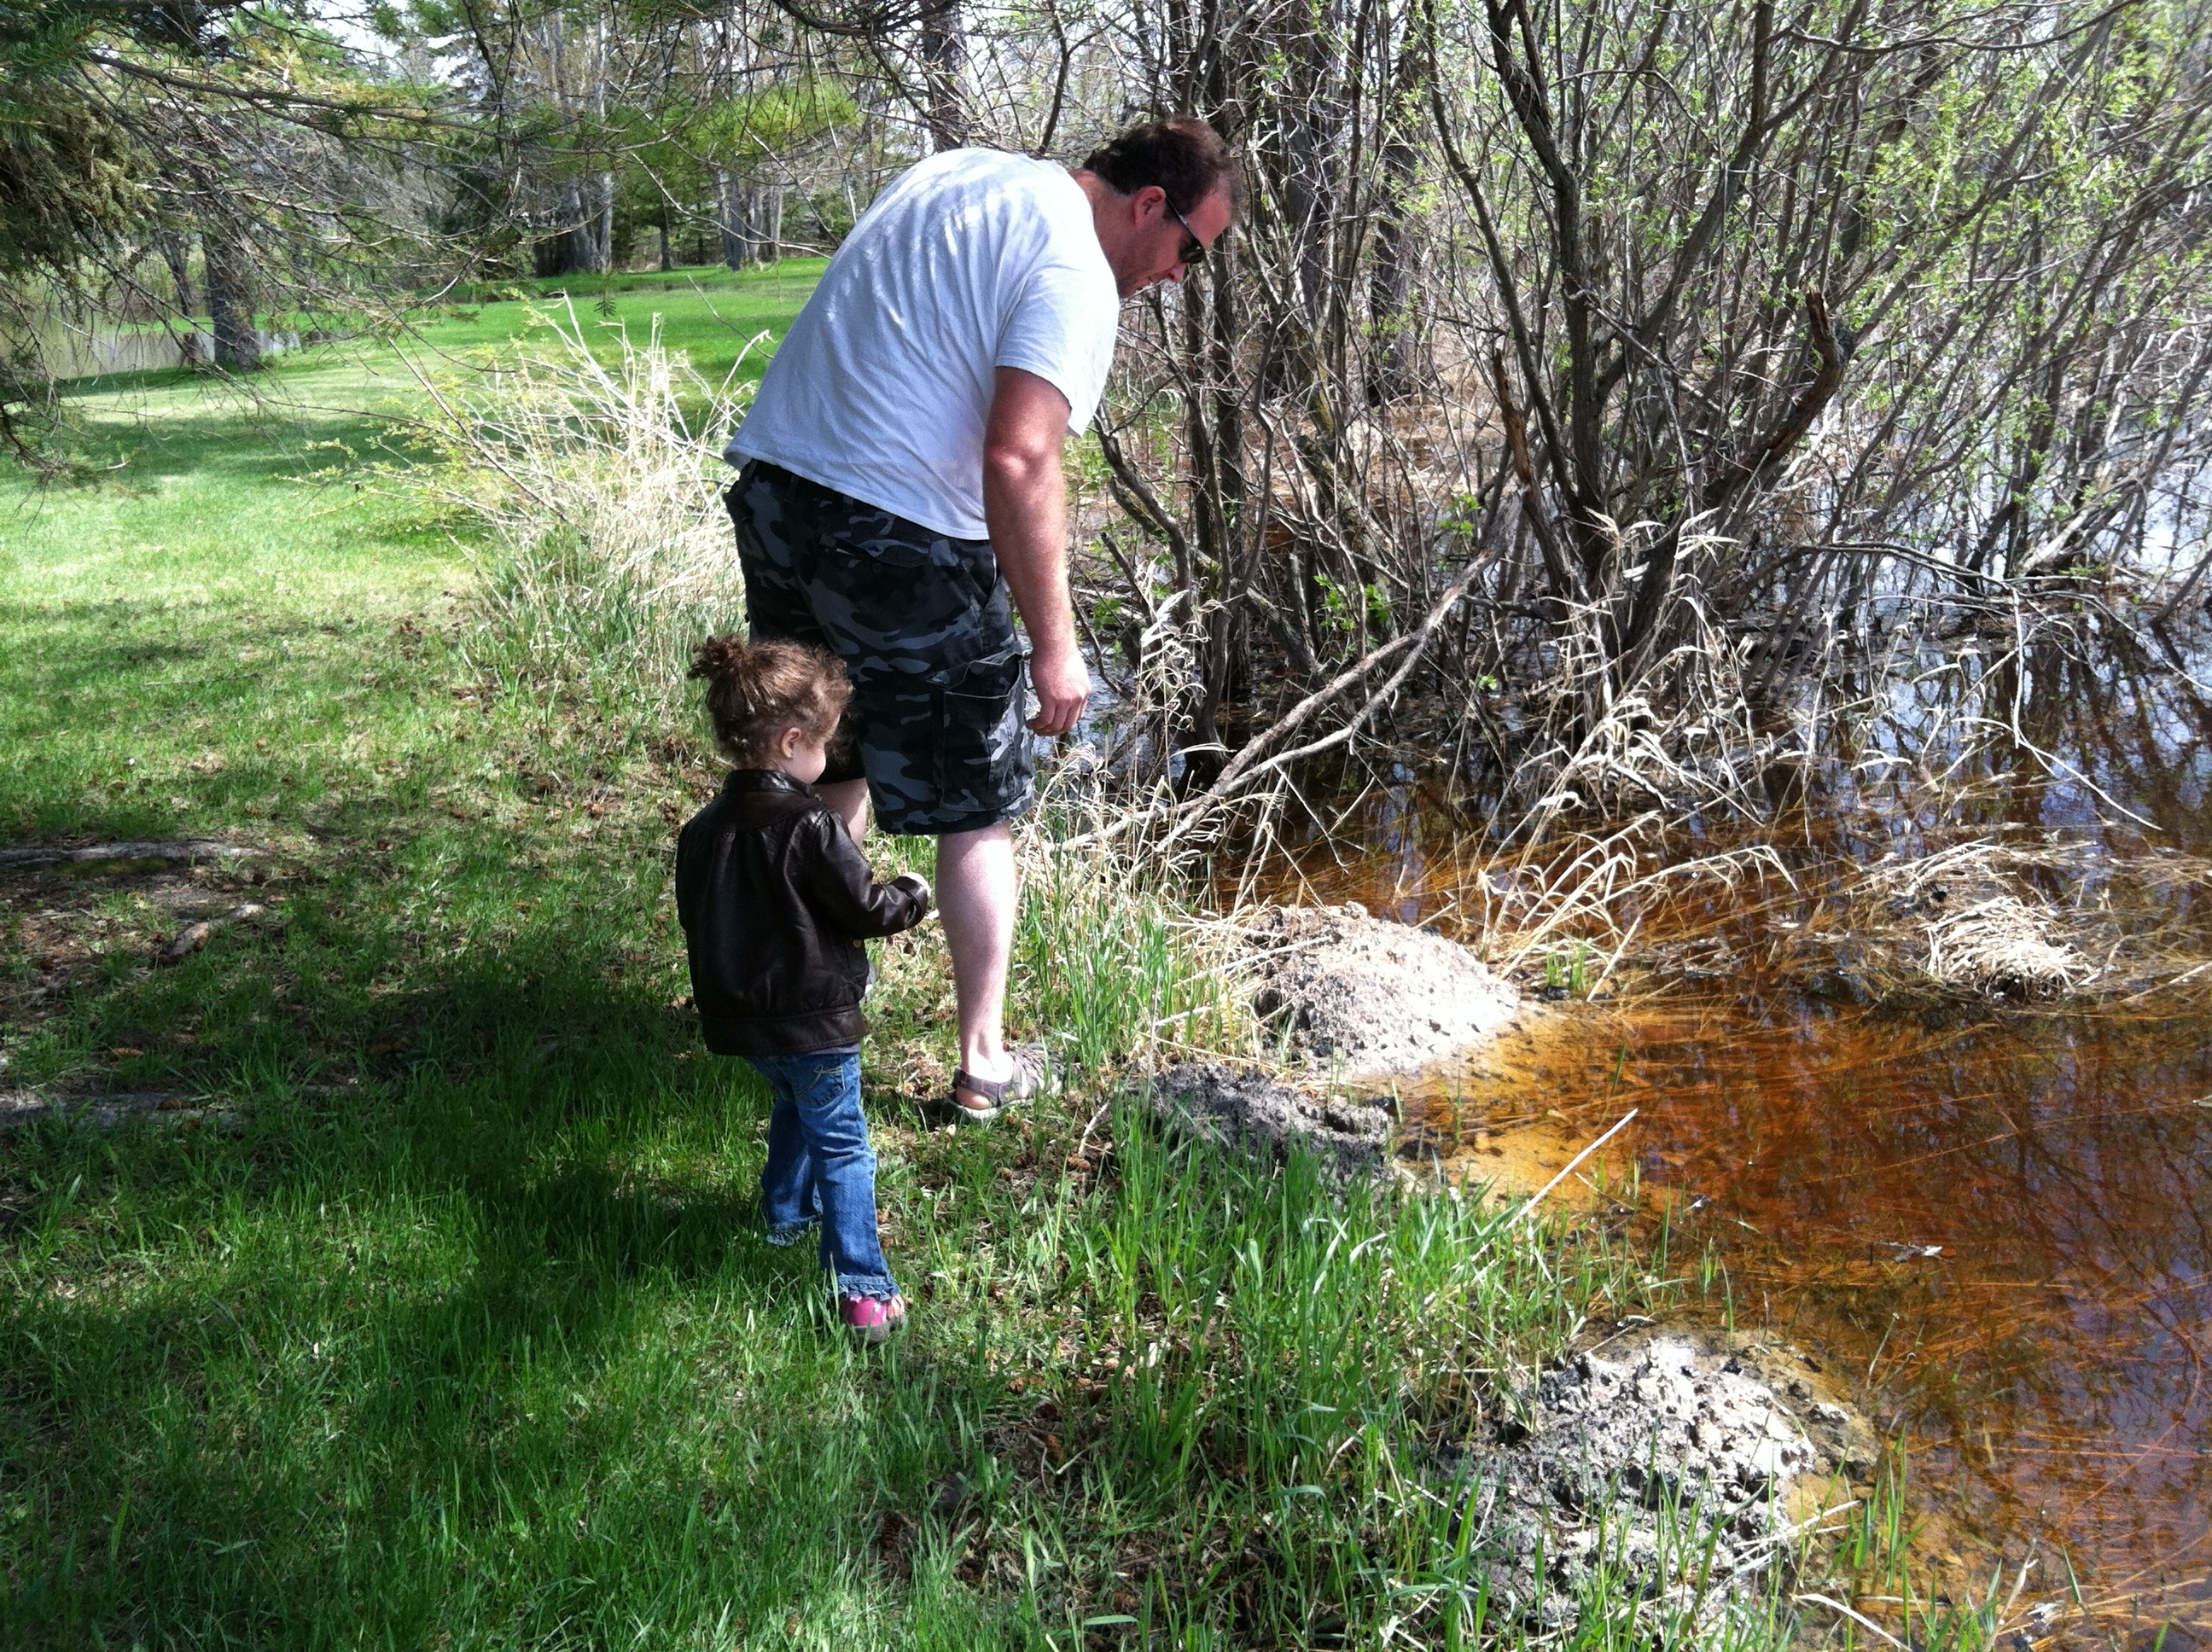 I had to ask Daddy to help with the frog catching - I saw so many and failed every time to actually get one!